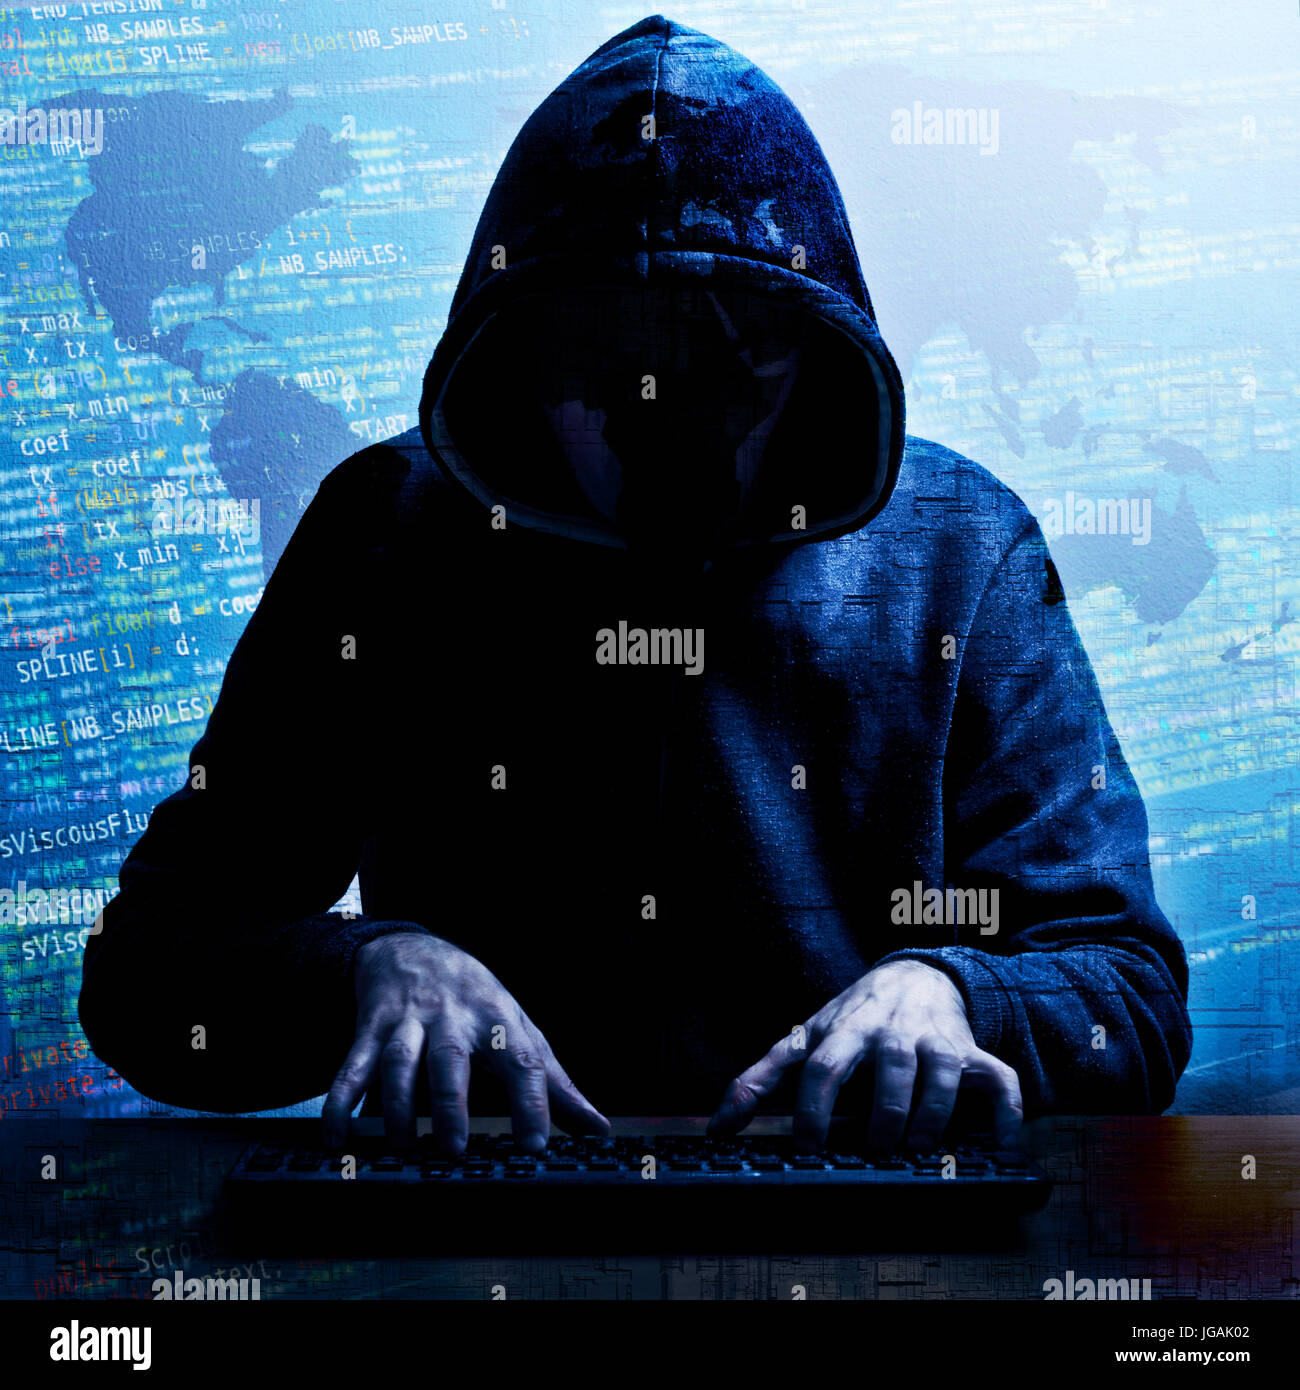 global hacking activity concept - Stock Image